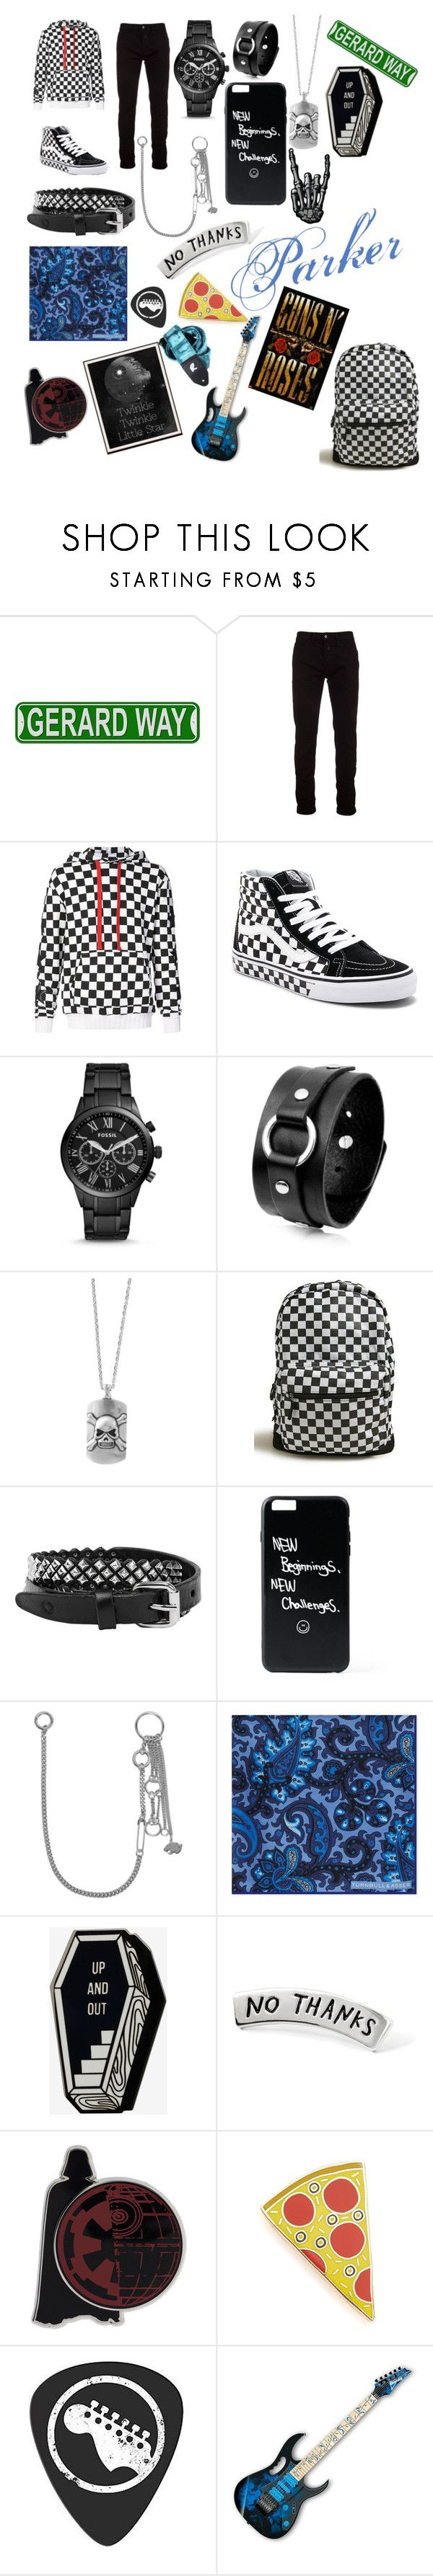 """Parker"" by lupusuncia ❤ liked on Polyvore featuring Marcelo Burlon, AMIRI, Vans, FOSSIL, Effy Jewelry, 21 Men, Rust Mood, Valentino, Turnbull & Asser and Georgia Perry"